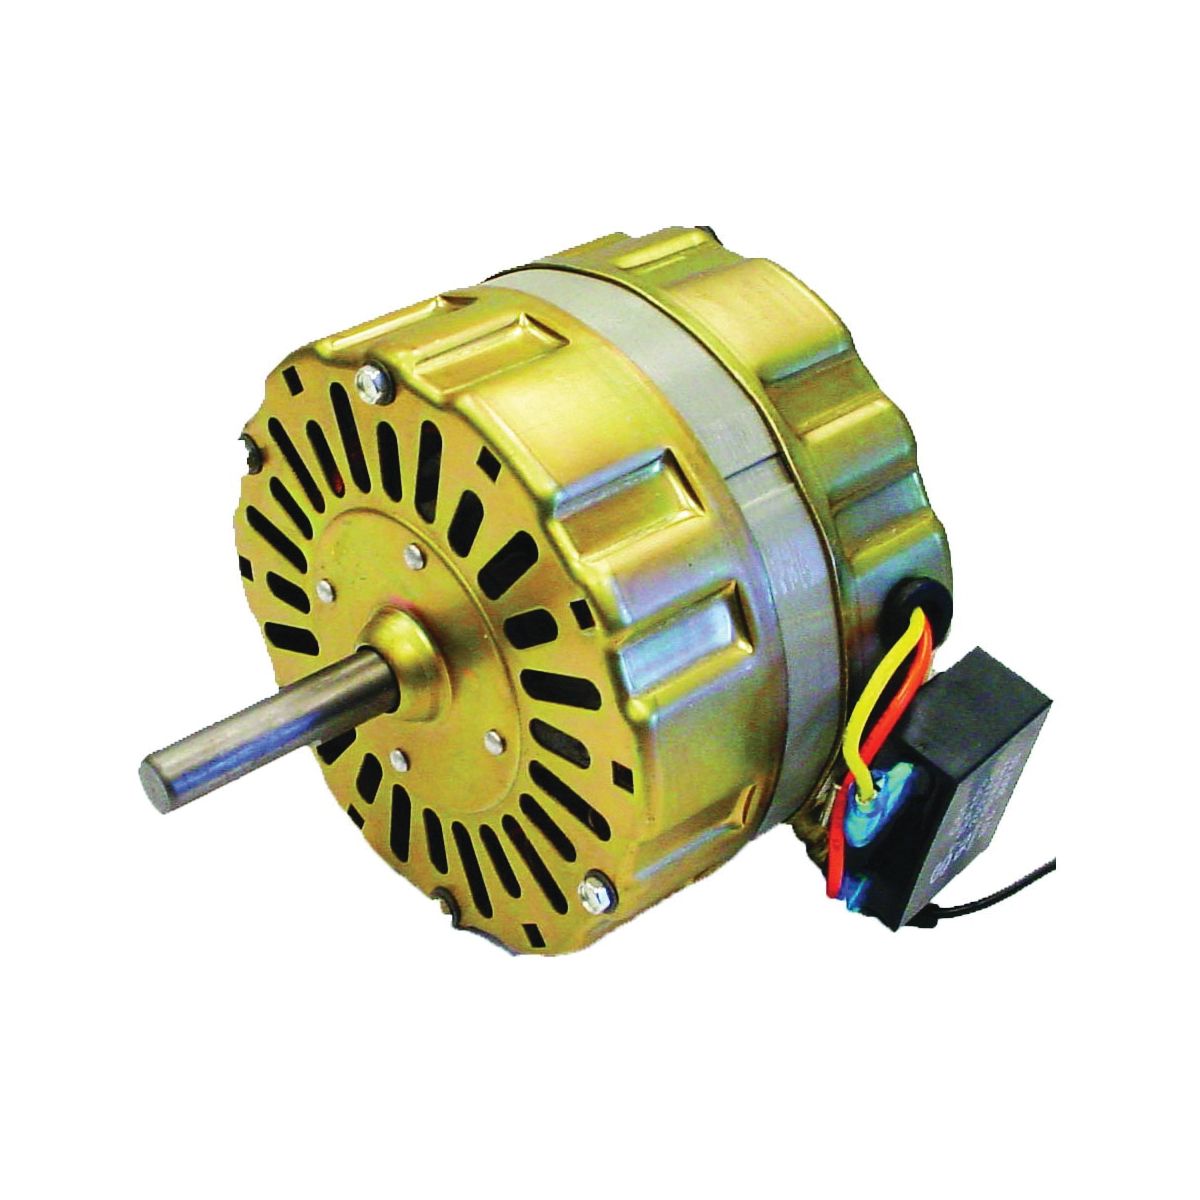 Picture of Master Flow PVM105/110 Replacement Motor, For: MasterFlow Power Attic Vent Models